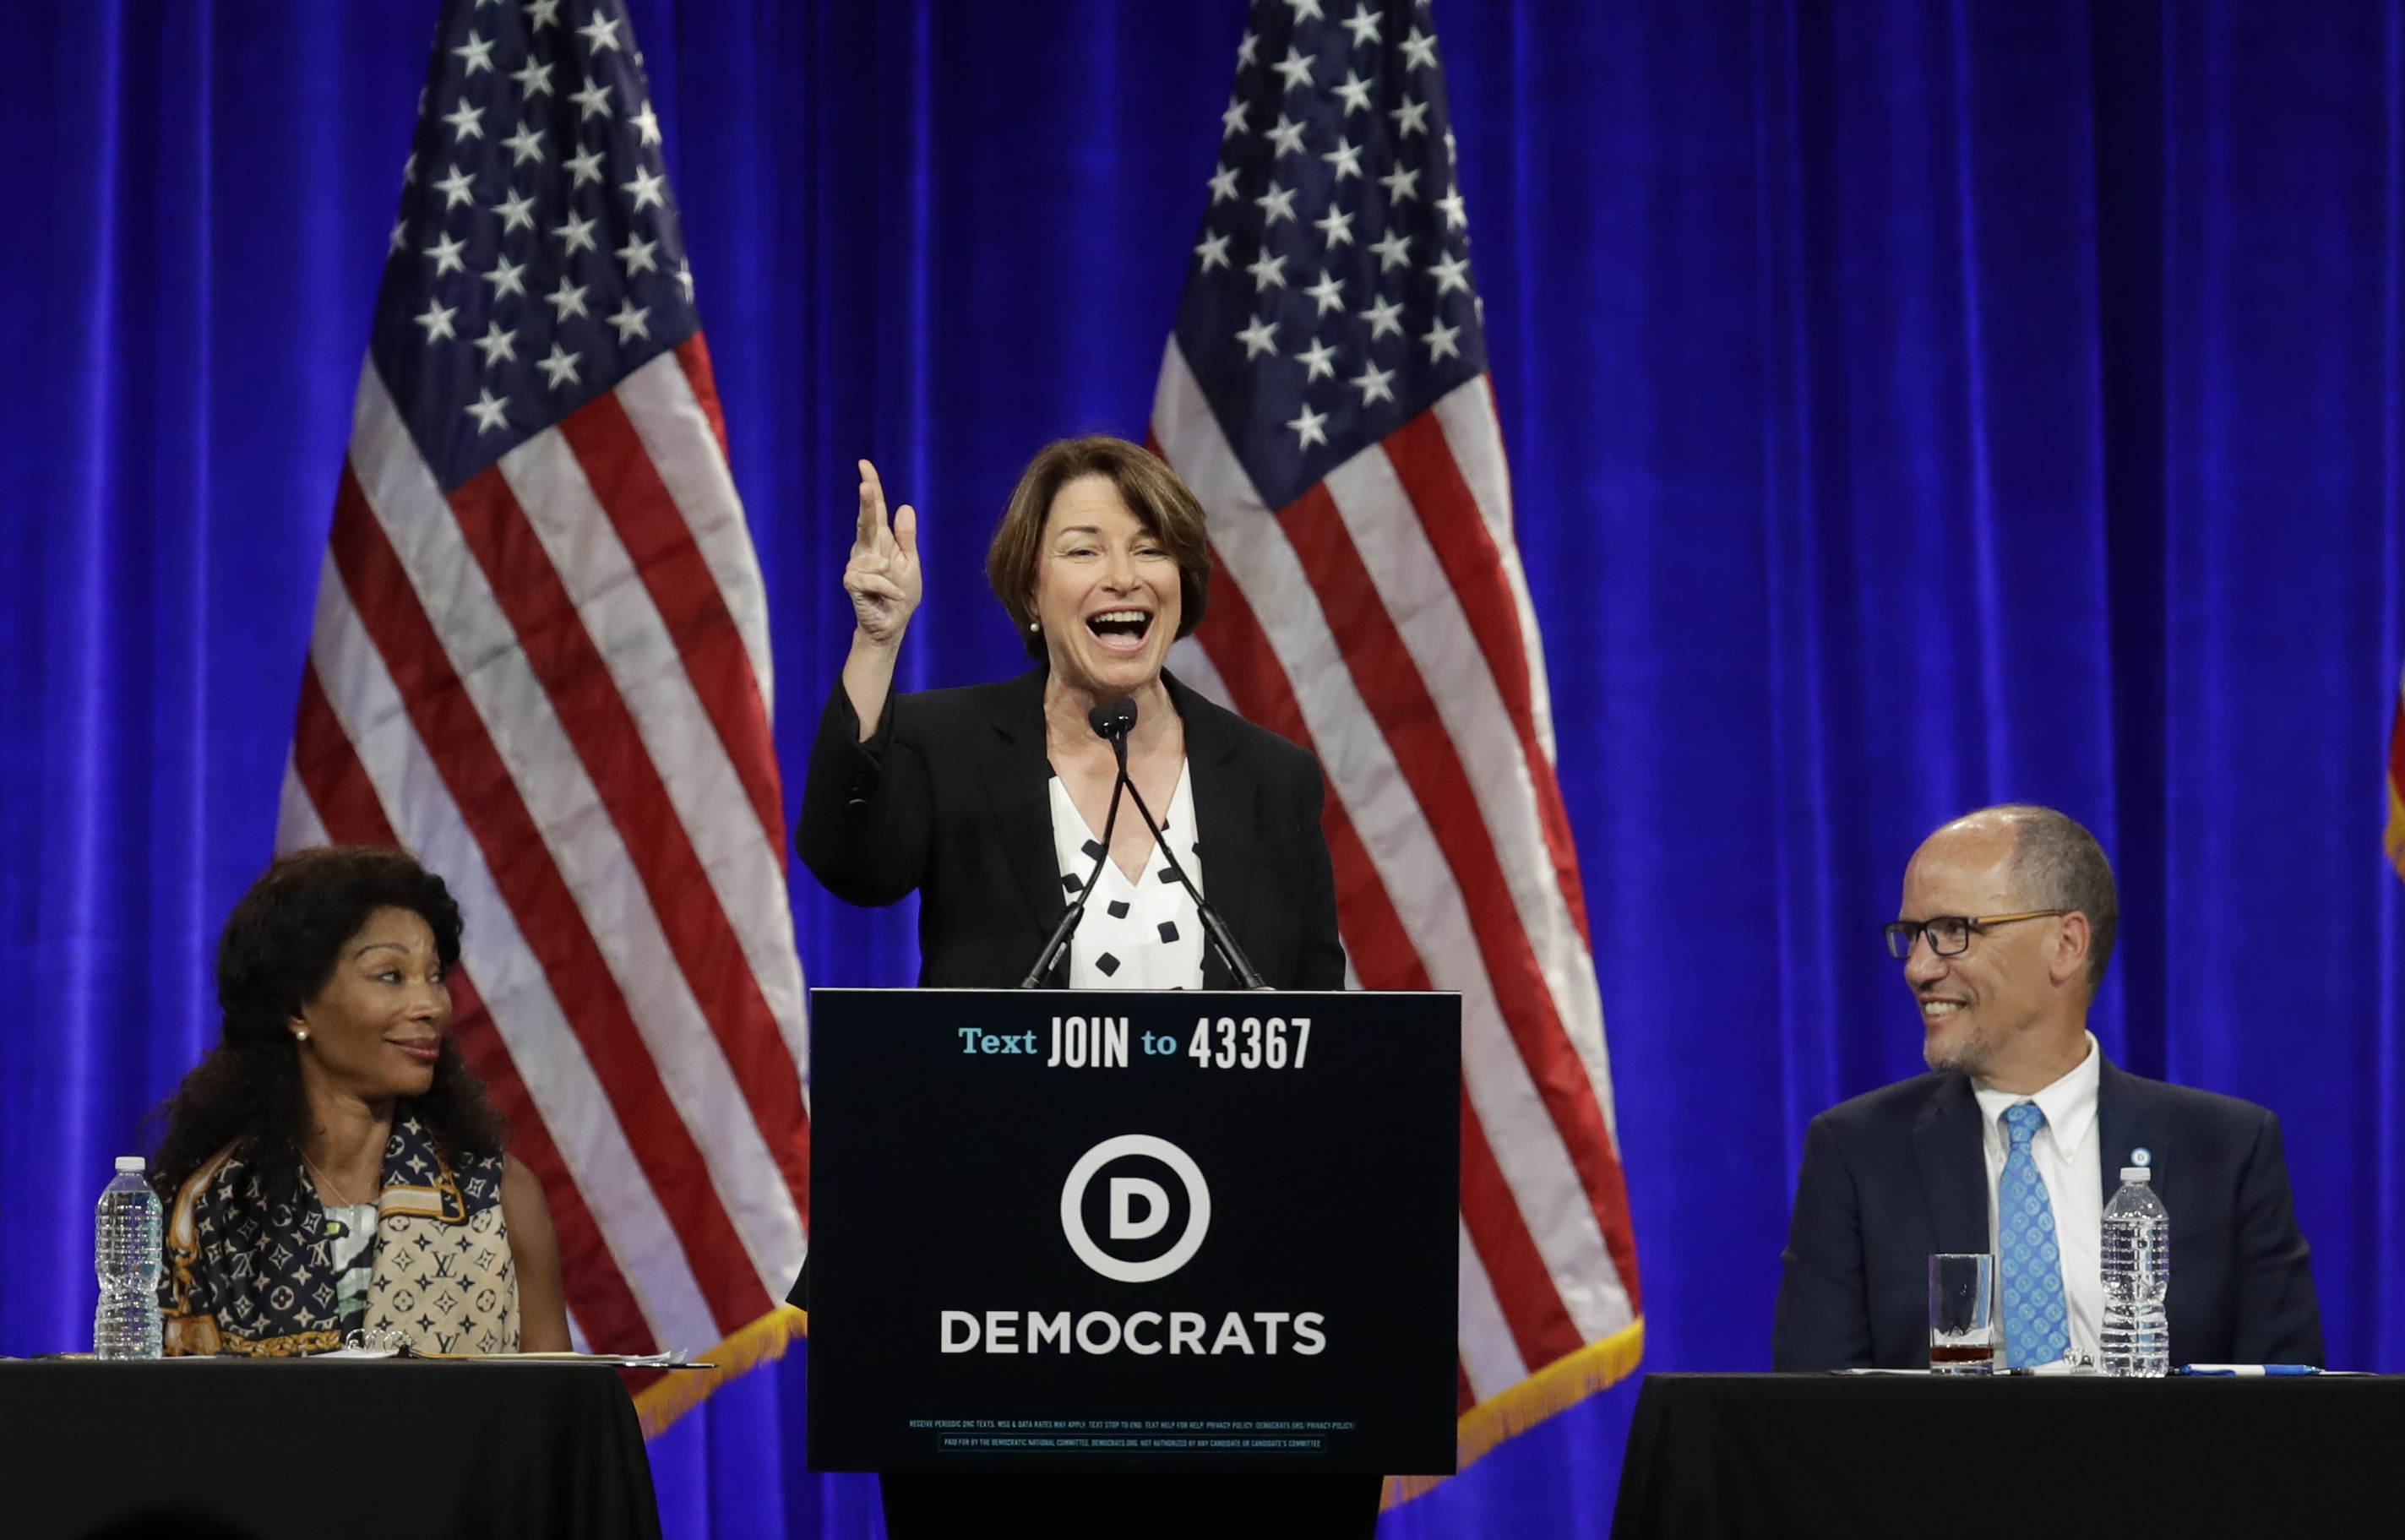 Amy Klobuchar: It is 'not American' to allow continued interference in elections